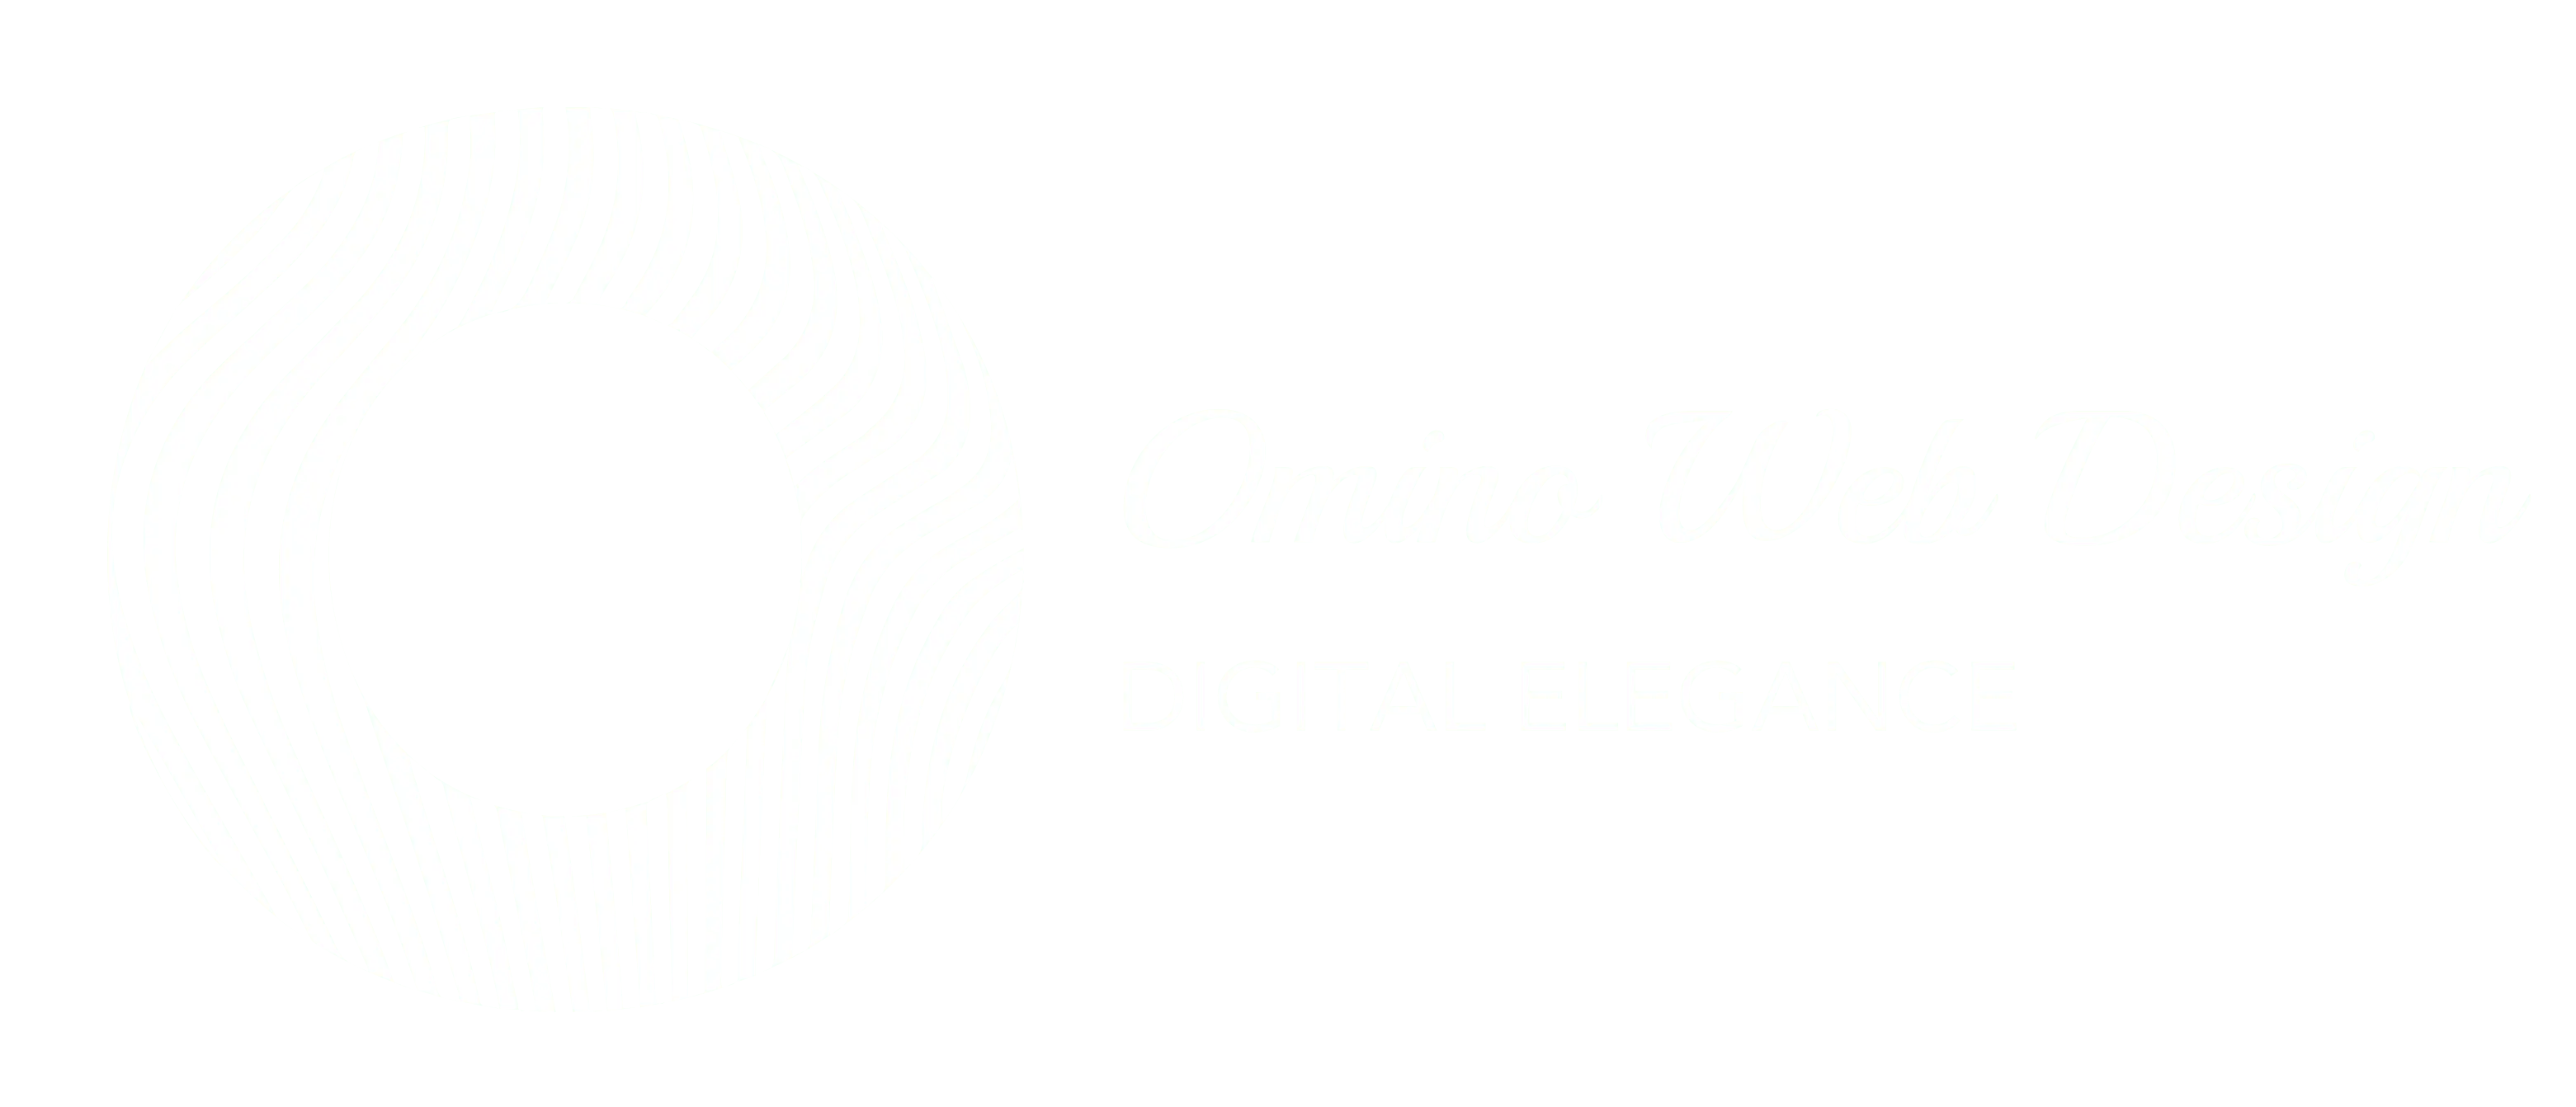 Home - Custom Website Designs Omino Web Design Website Digital Elegance